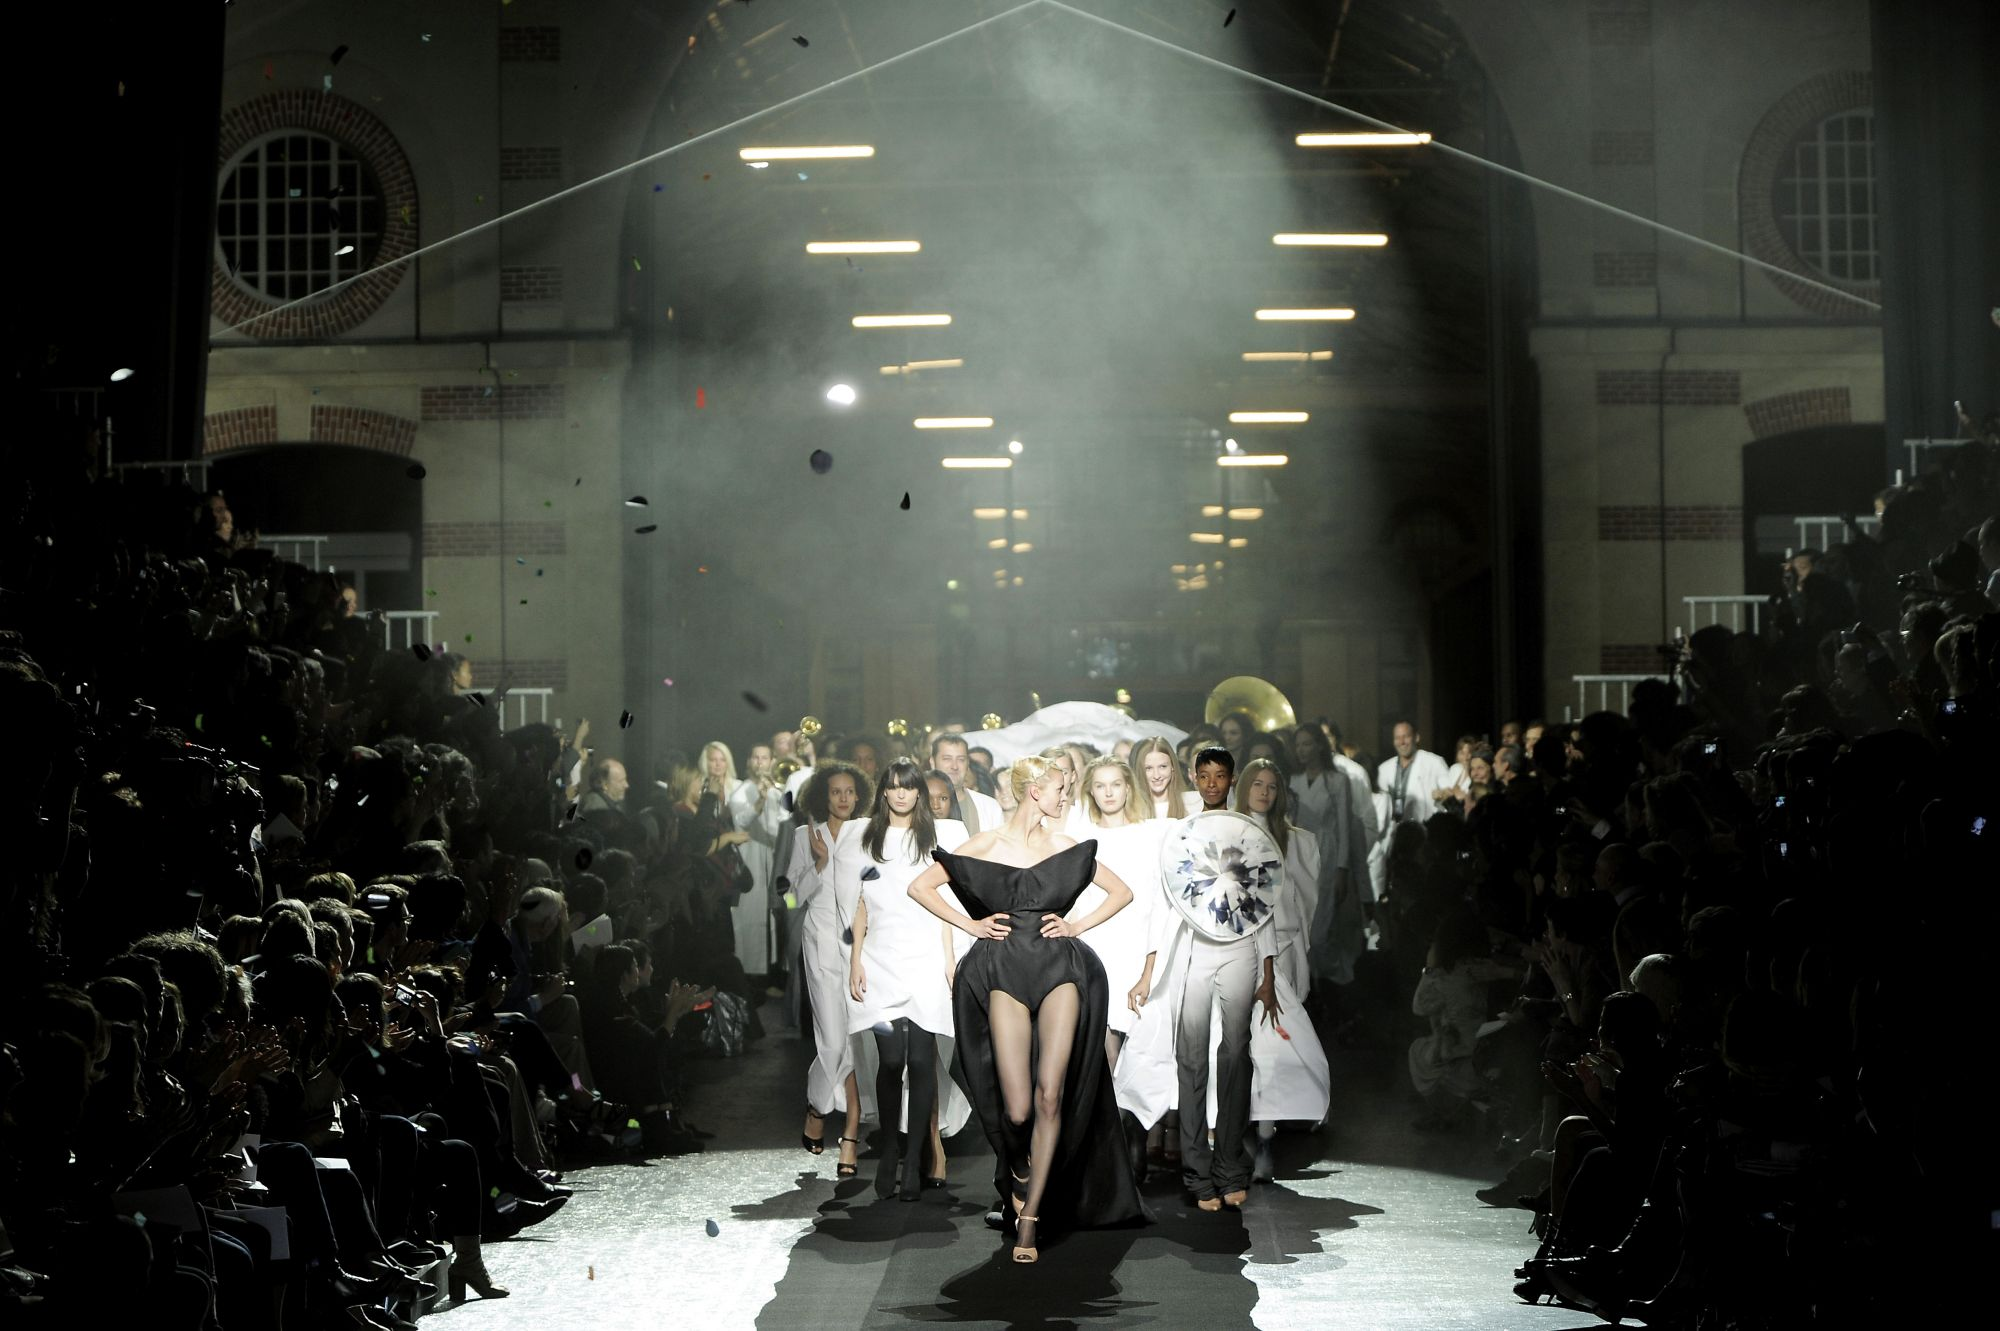 PARIS - SEPTEMBER 29:  (UK OUT) Models walk the runway during the Maison Martin Margiela show part of Paris Fashion Week Spring/Summer 2009 on September 29,2008 in Paris,France.  (Photo by Karl Prouse/Catwalking/Getty Images)